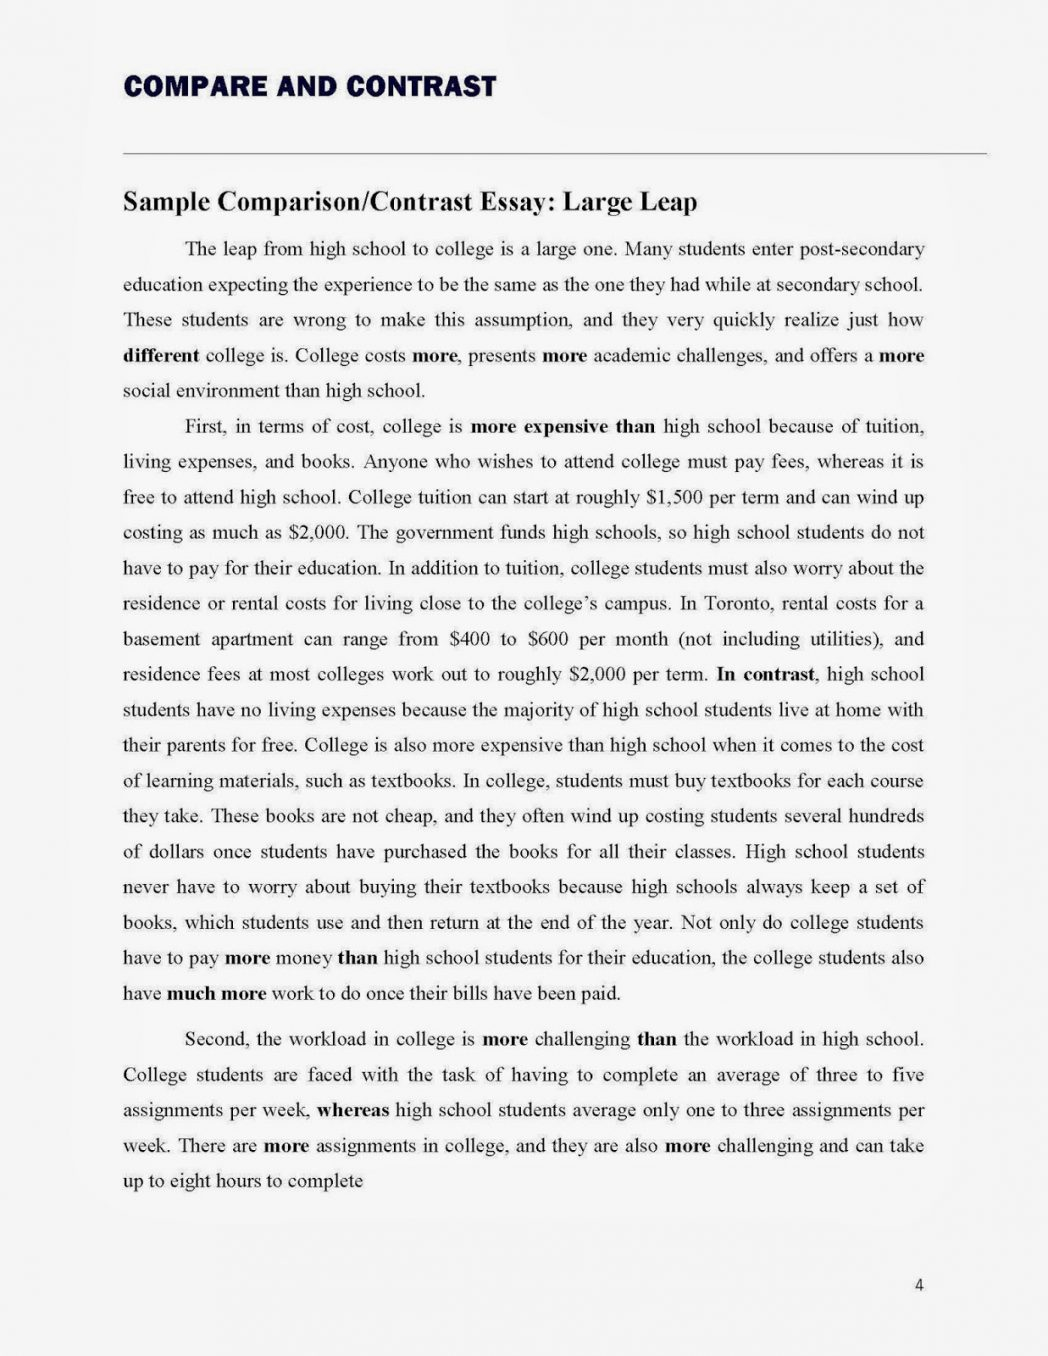 001 Comparisonssay Topic Compare Contrast Prompts Collegenglish T Level Topics Composition Samples For Students Pdfxamples Argumentative Persuasive Freshman 1048x1356 Staggering Comparison Essay Esl And Examples Middle School Full